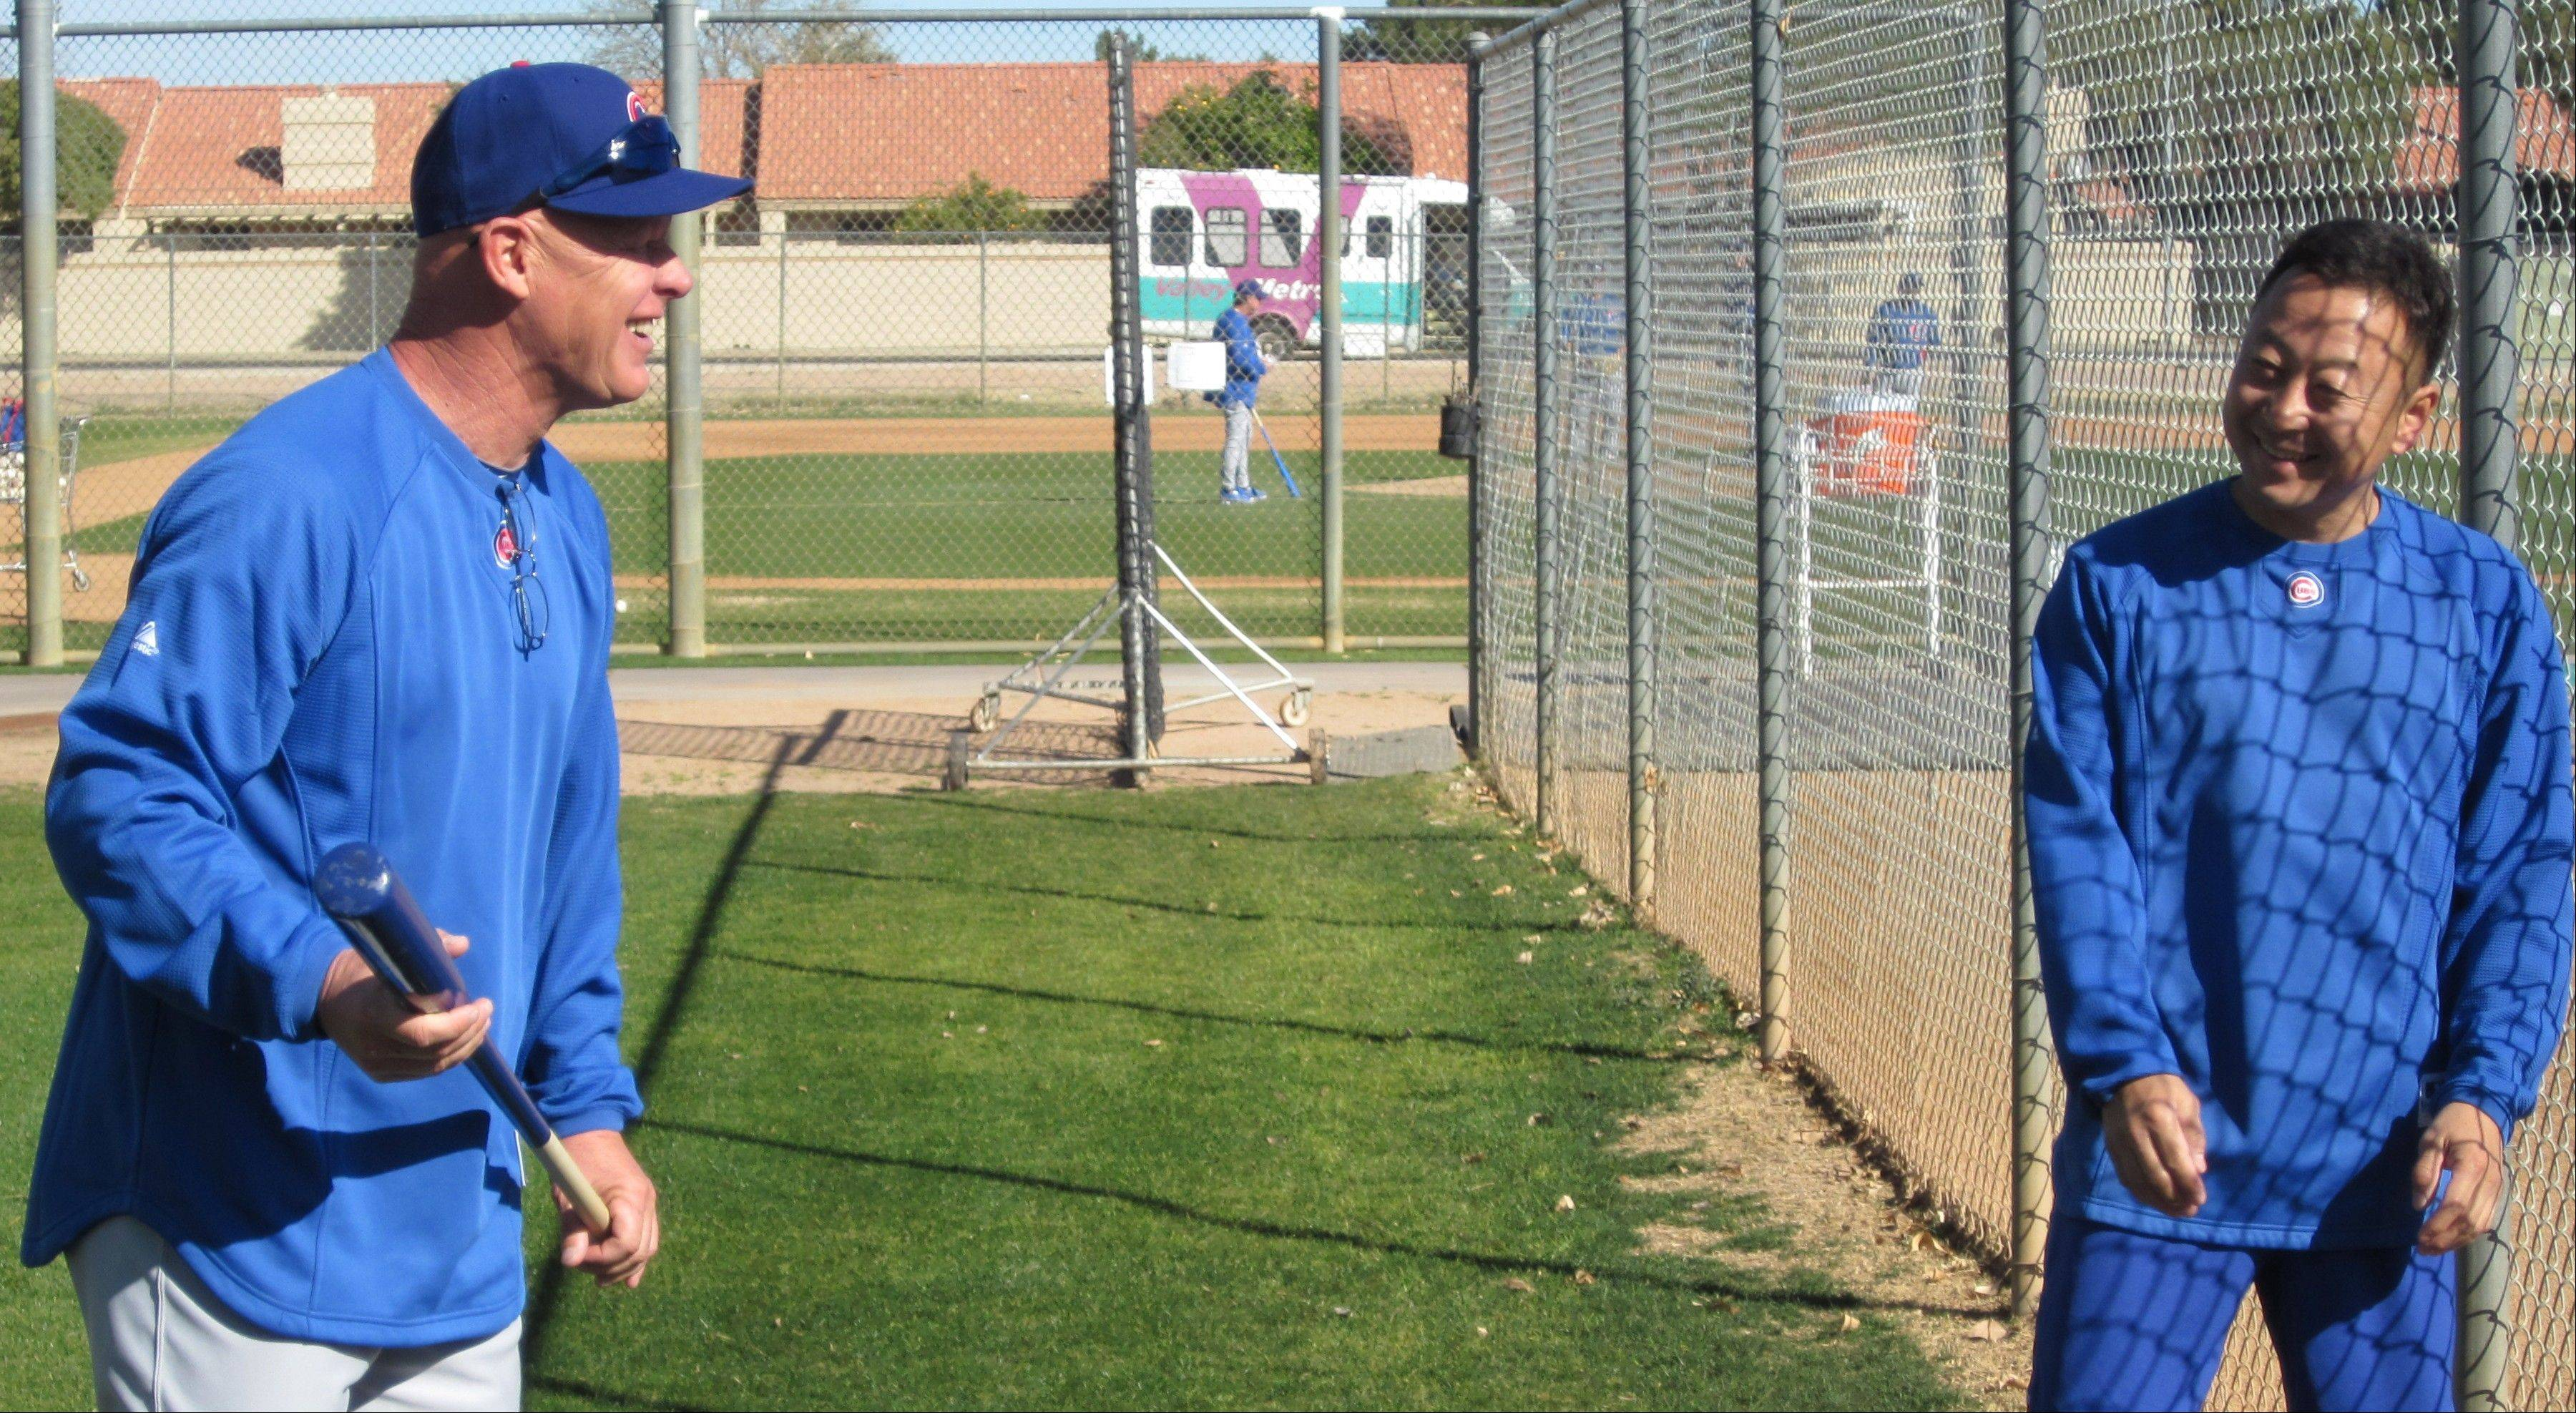 Cubs manager Mike Quade shares a laugh with assistant trainer Yoshi Nakazawa during workouts at Cubs camp in Mesa, Ariz.